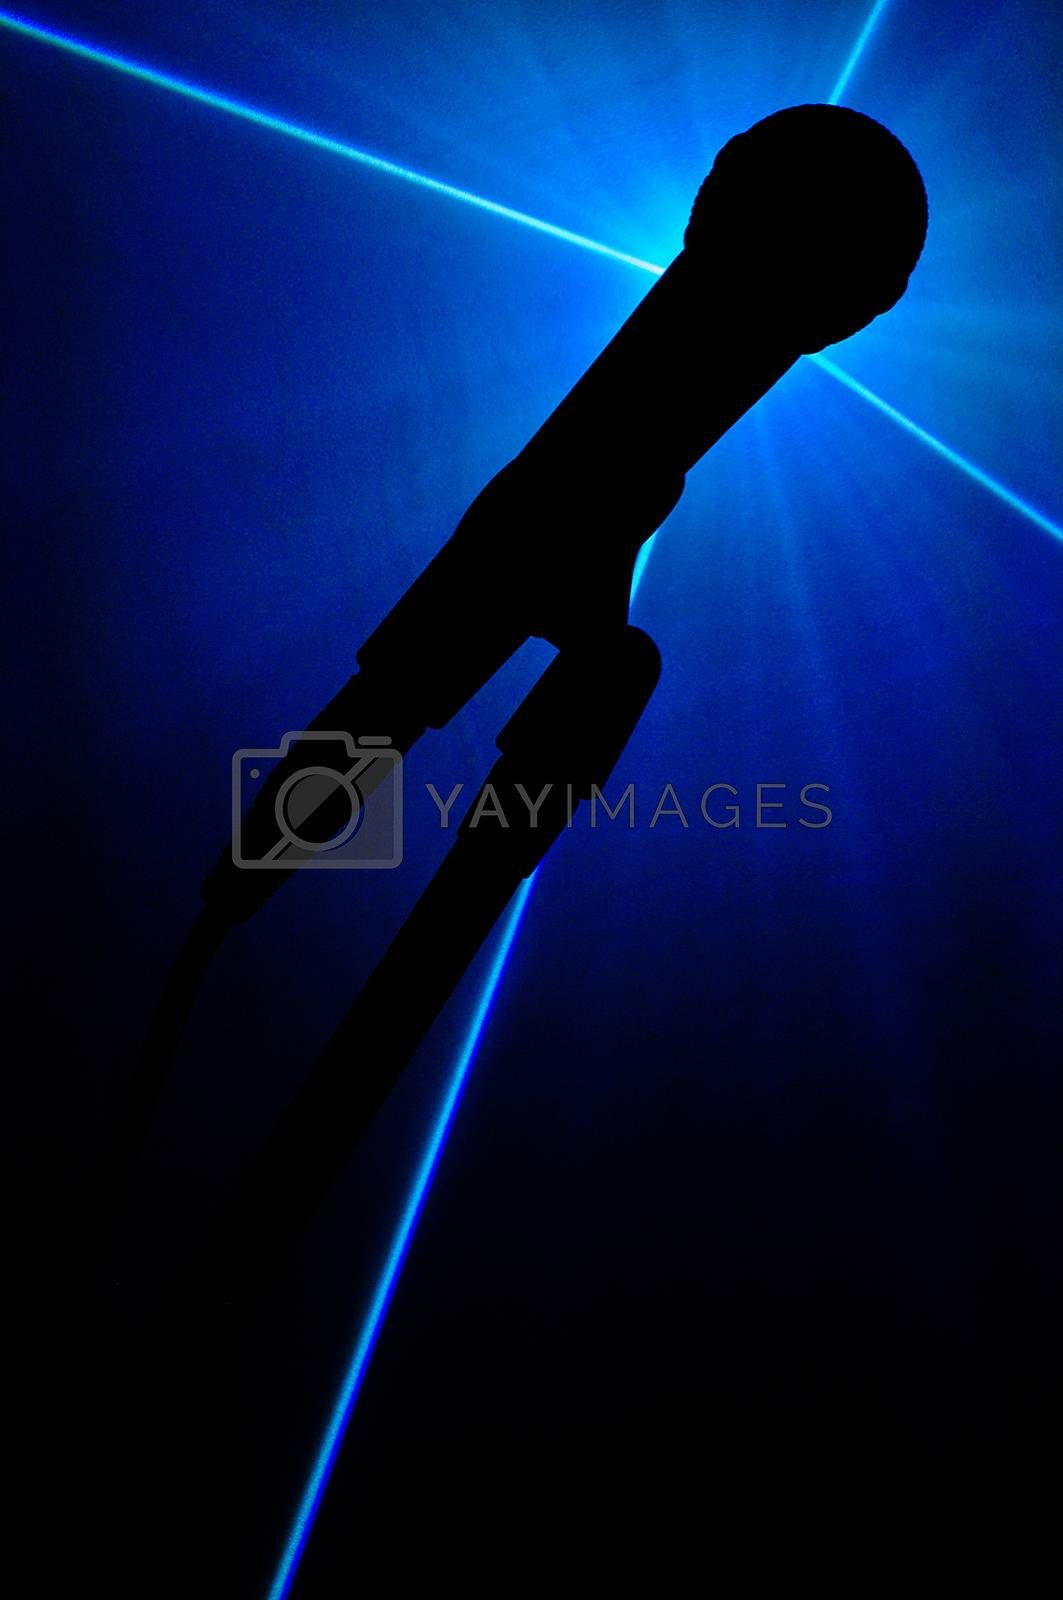 Royalty free image of Microphone by Symbolic